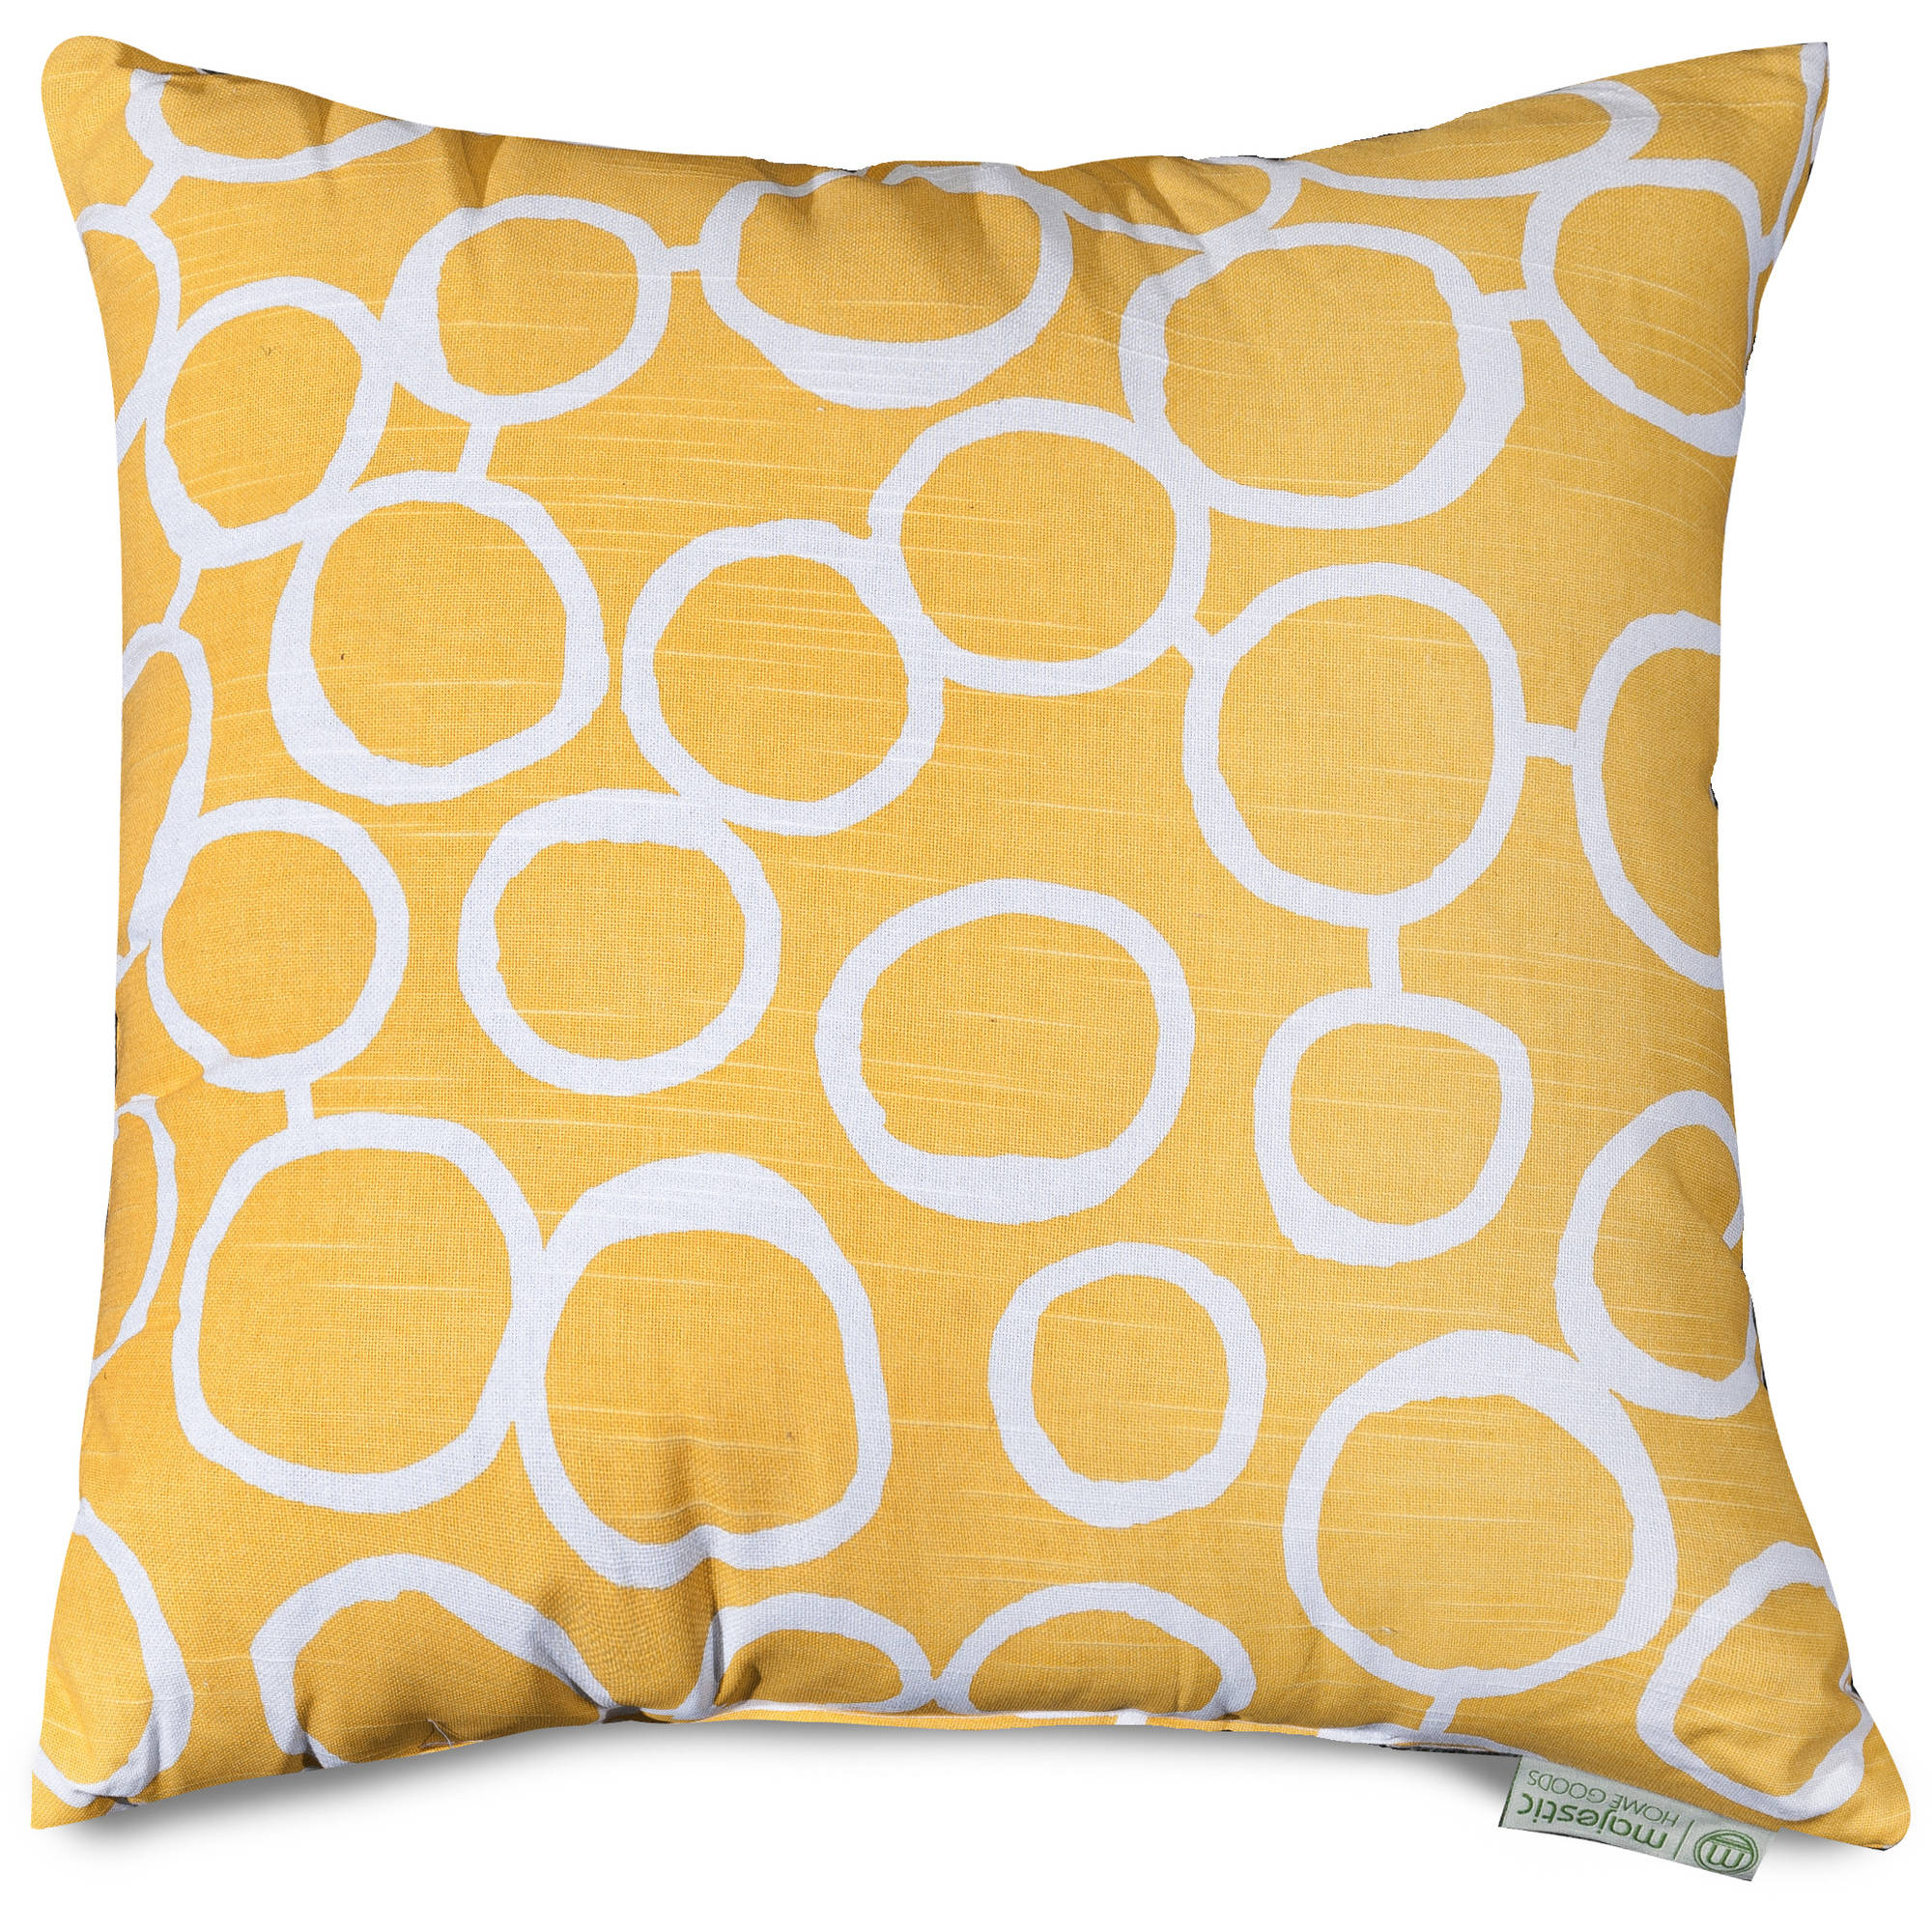 Majestic Home Goods Fusion Extra Large Decorative Pillow Home Decorators Catalog Best Ideas of Home Decor and Design [homedecoratorscatalog.us]